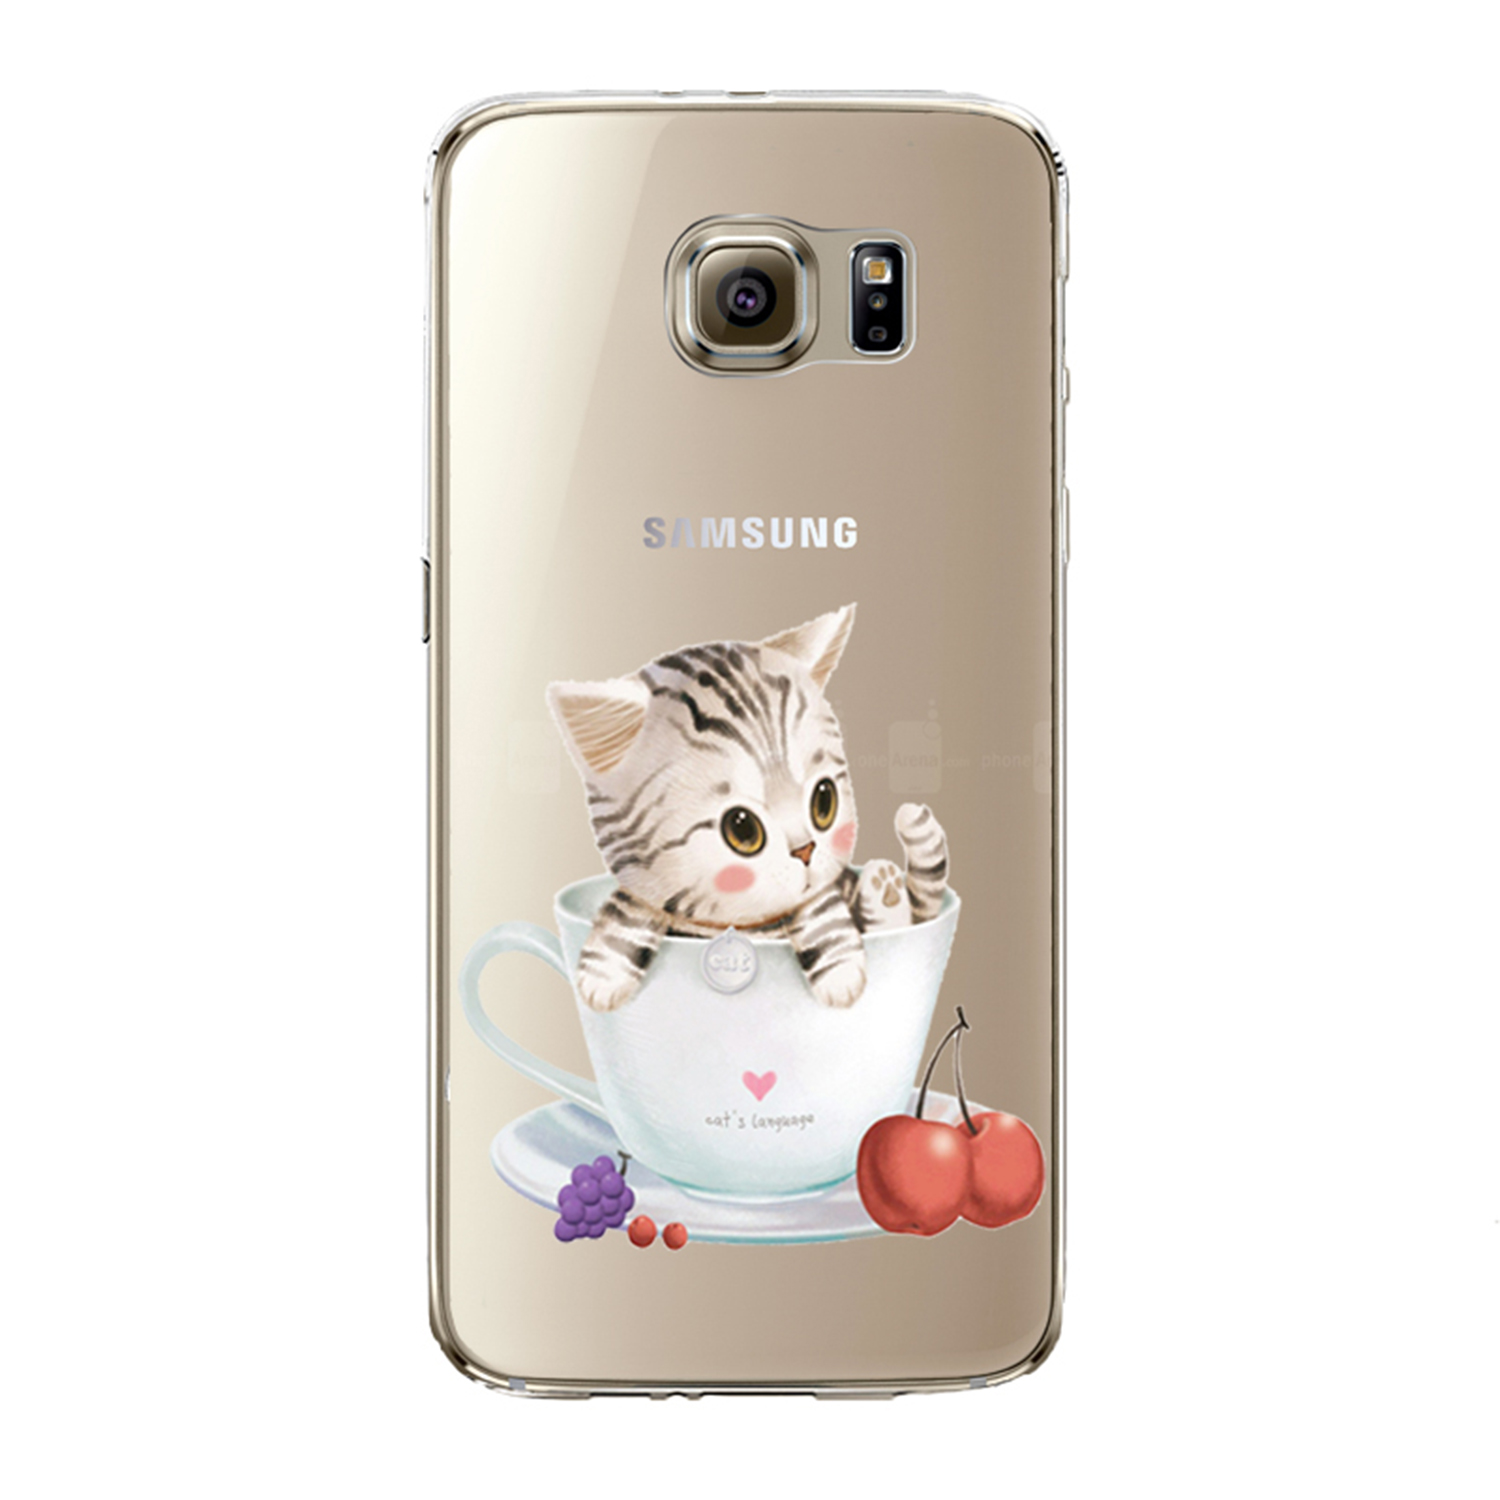 Kritzel Case Collection Galaxy S7 edge - Kitty Collection #451